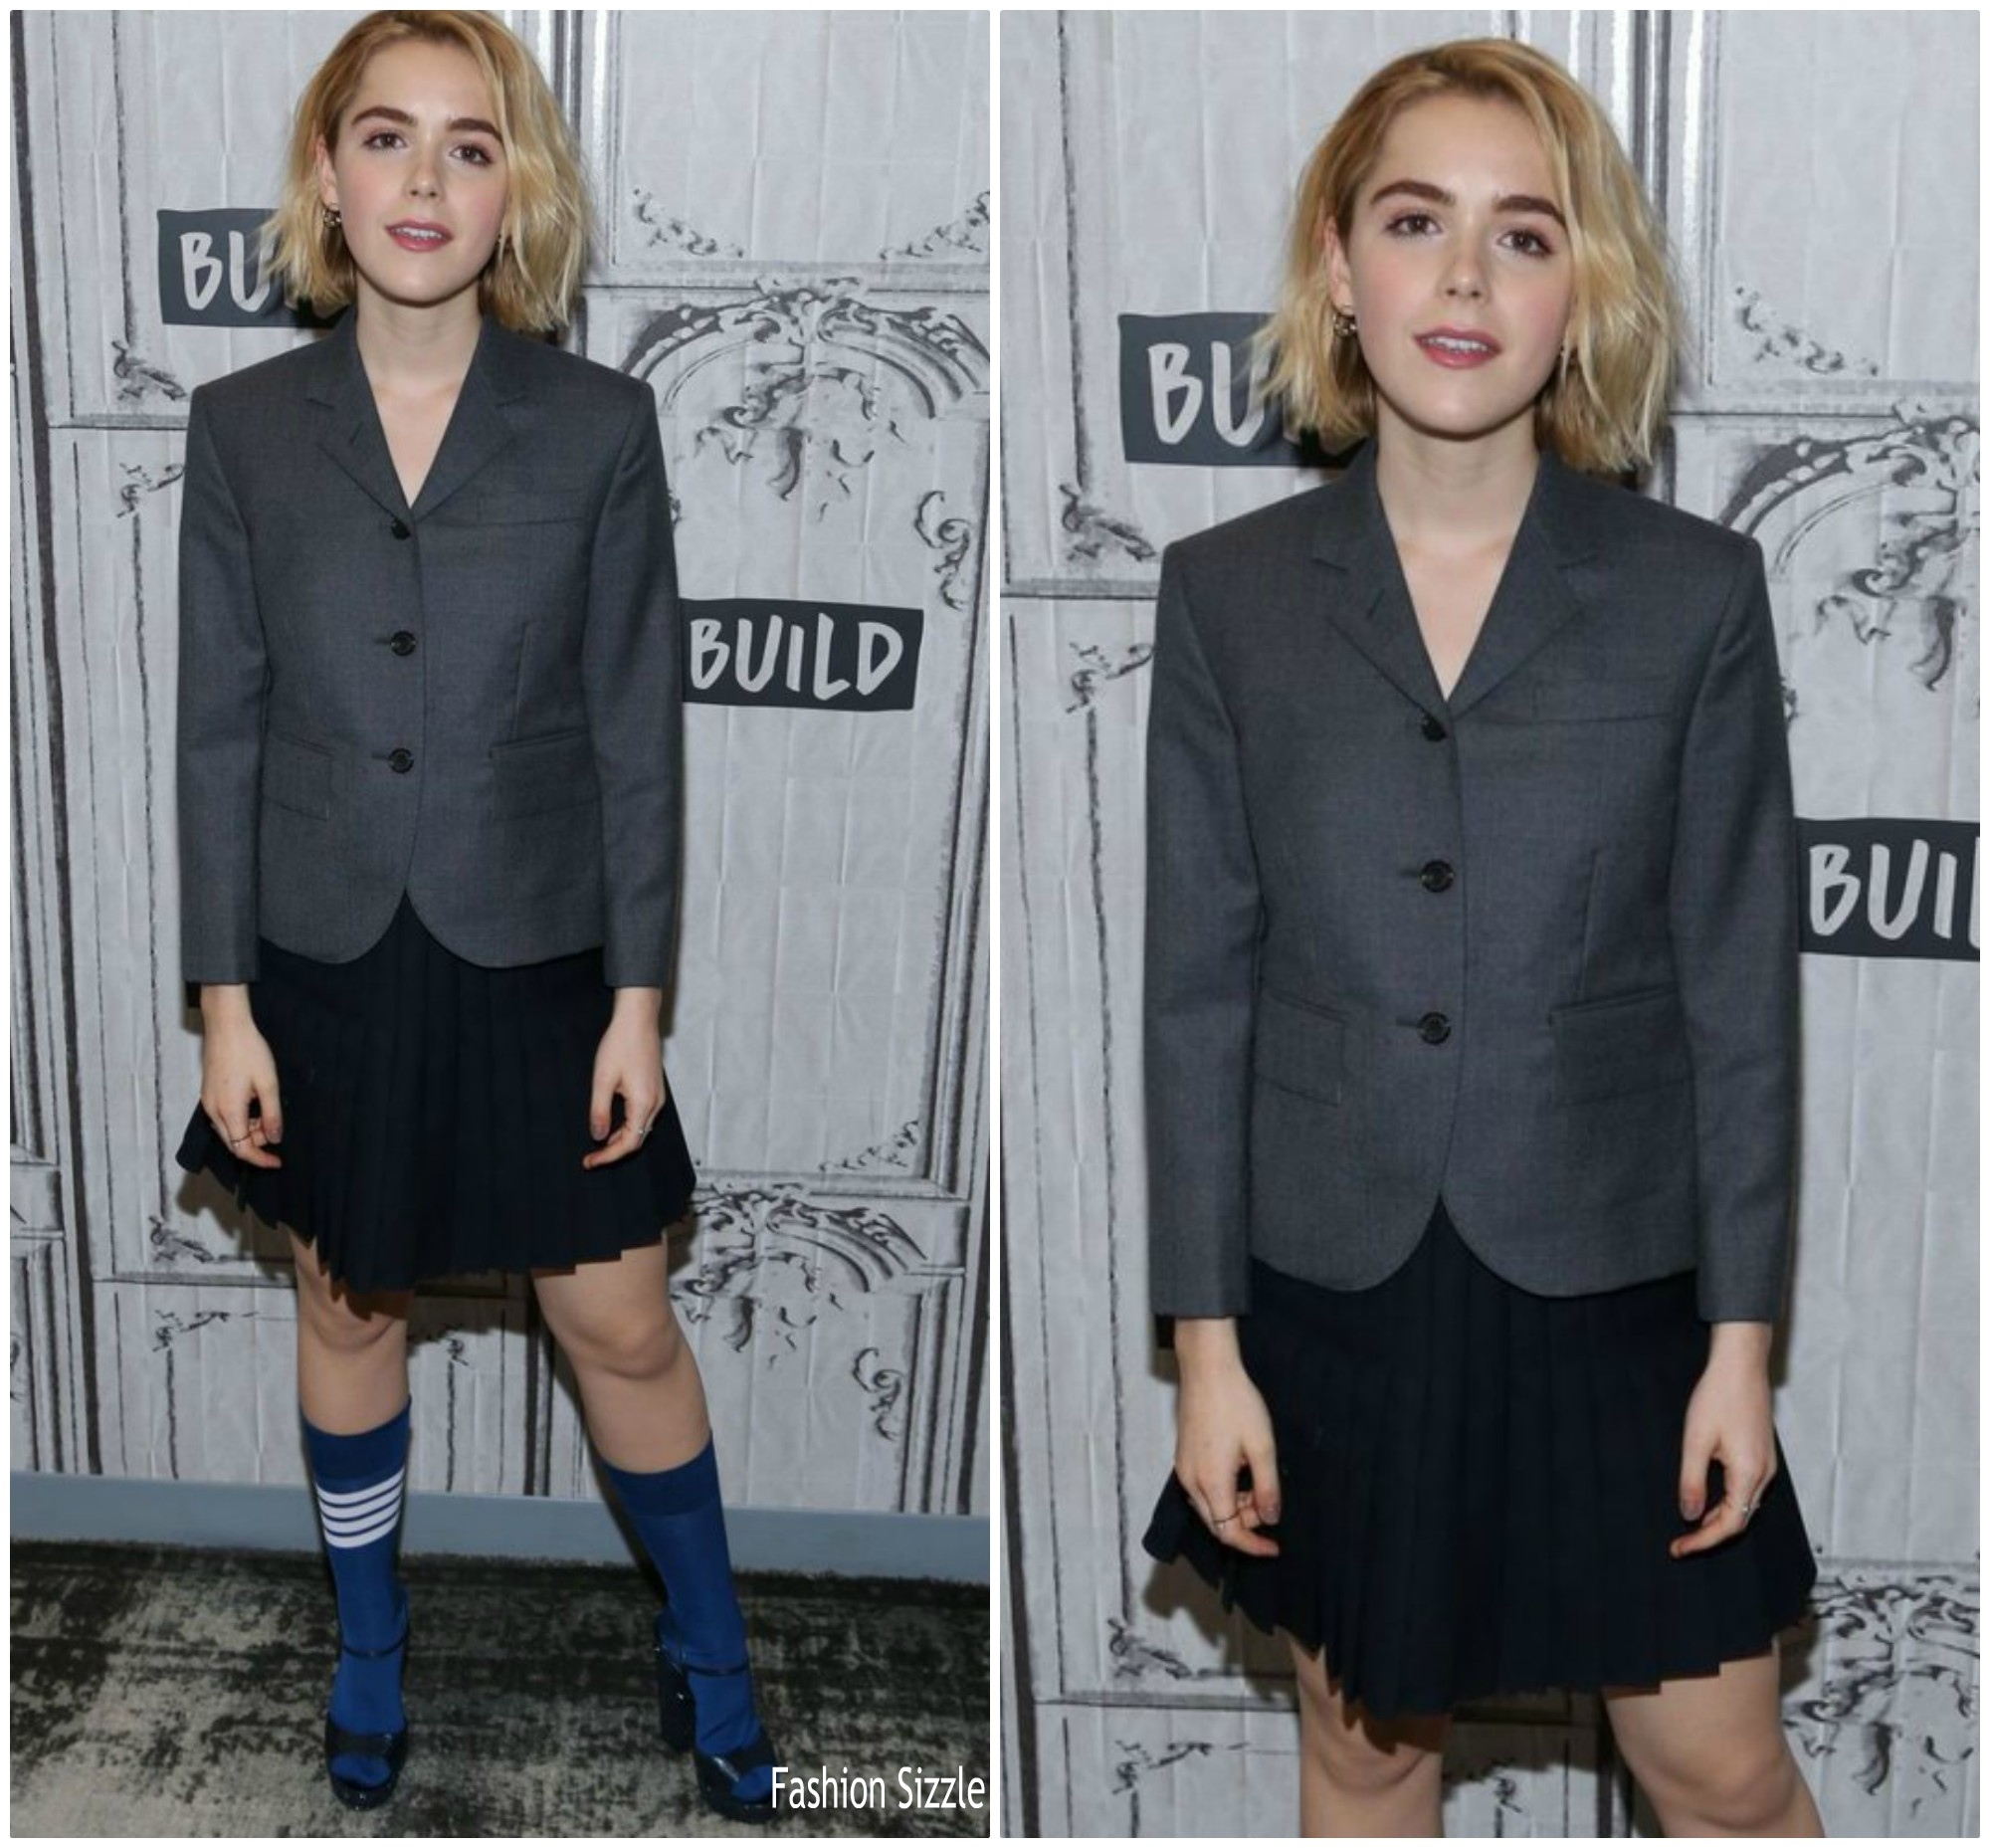 kiernan-shipka-in-thom-browne-build-series